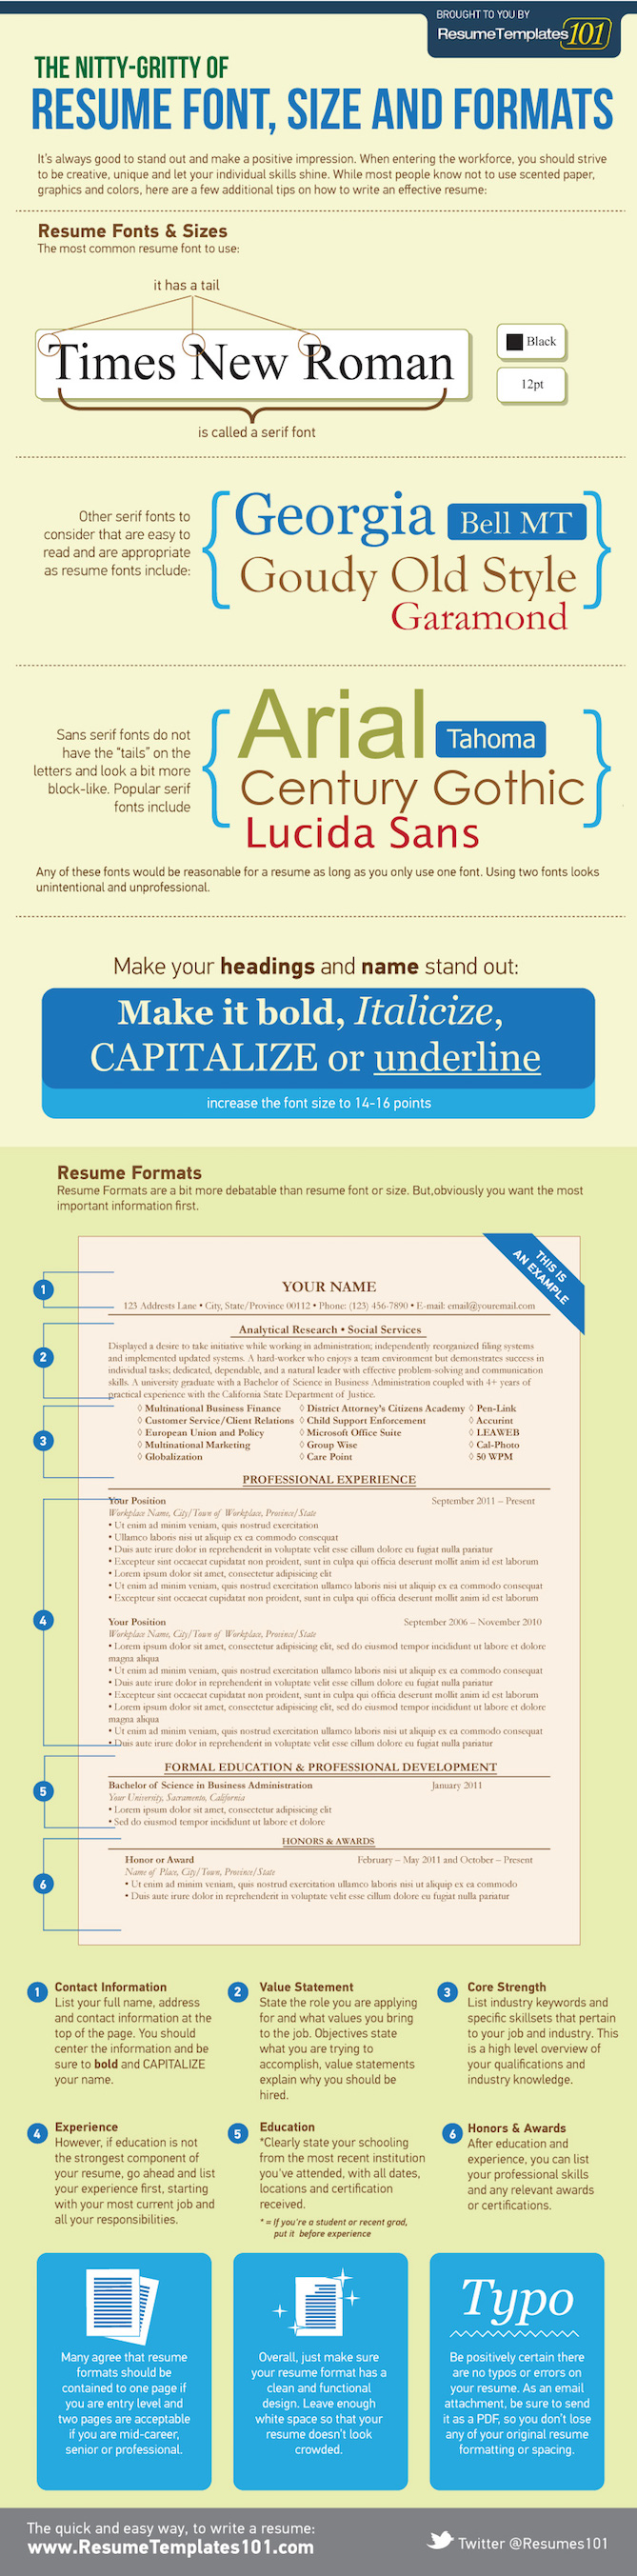 resume formats infographic